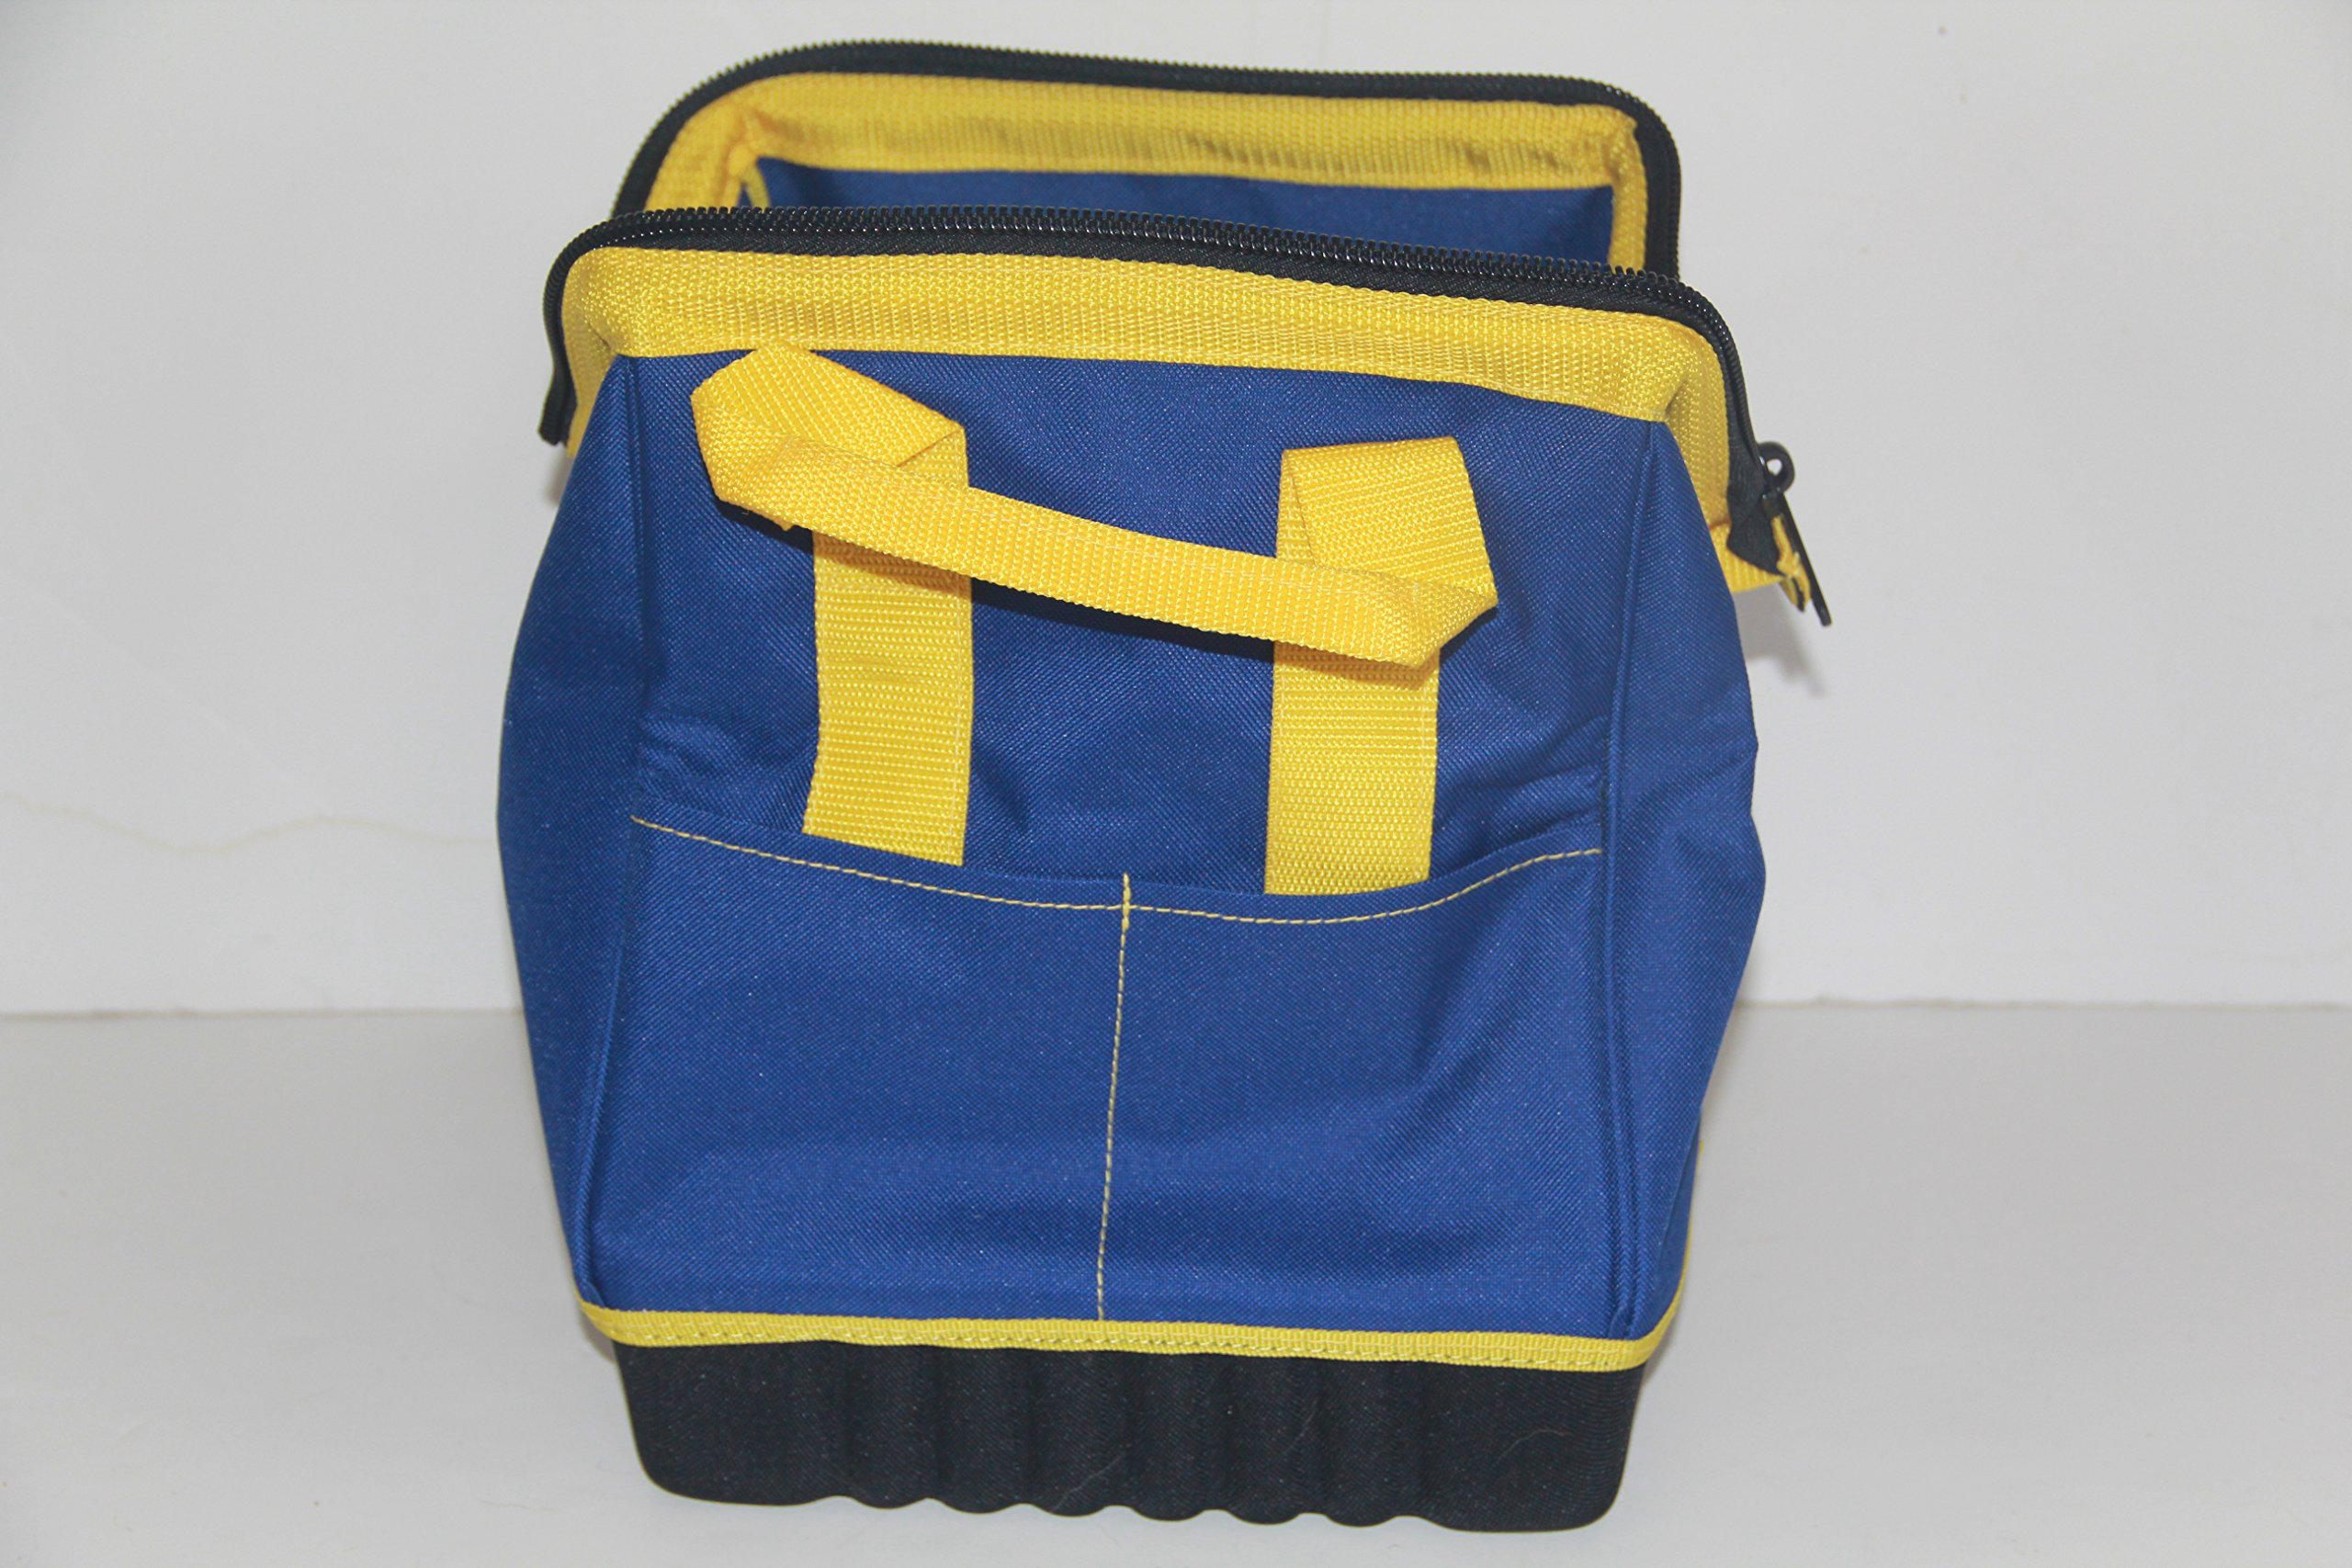 Extra Heavy Duty Nylon Bocce Bag - Blue with Yellow Handles